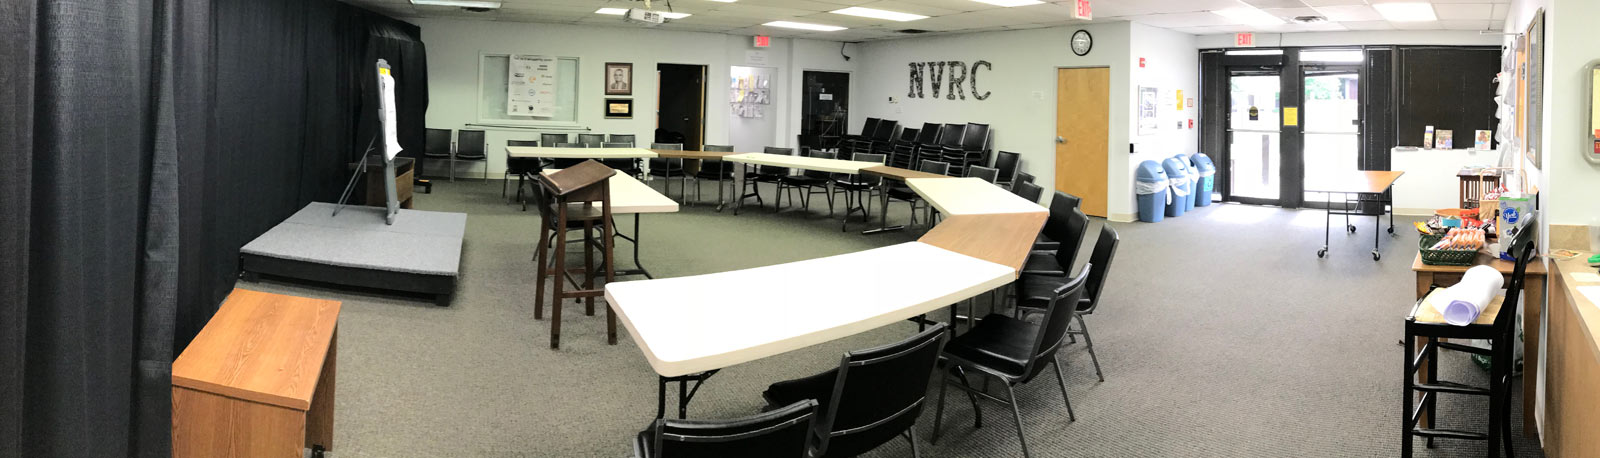 Accessible Meeting Room